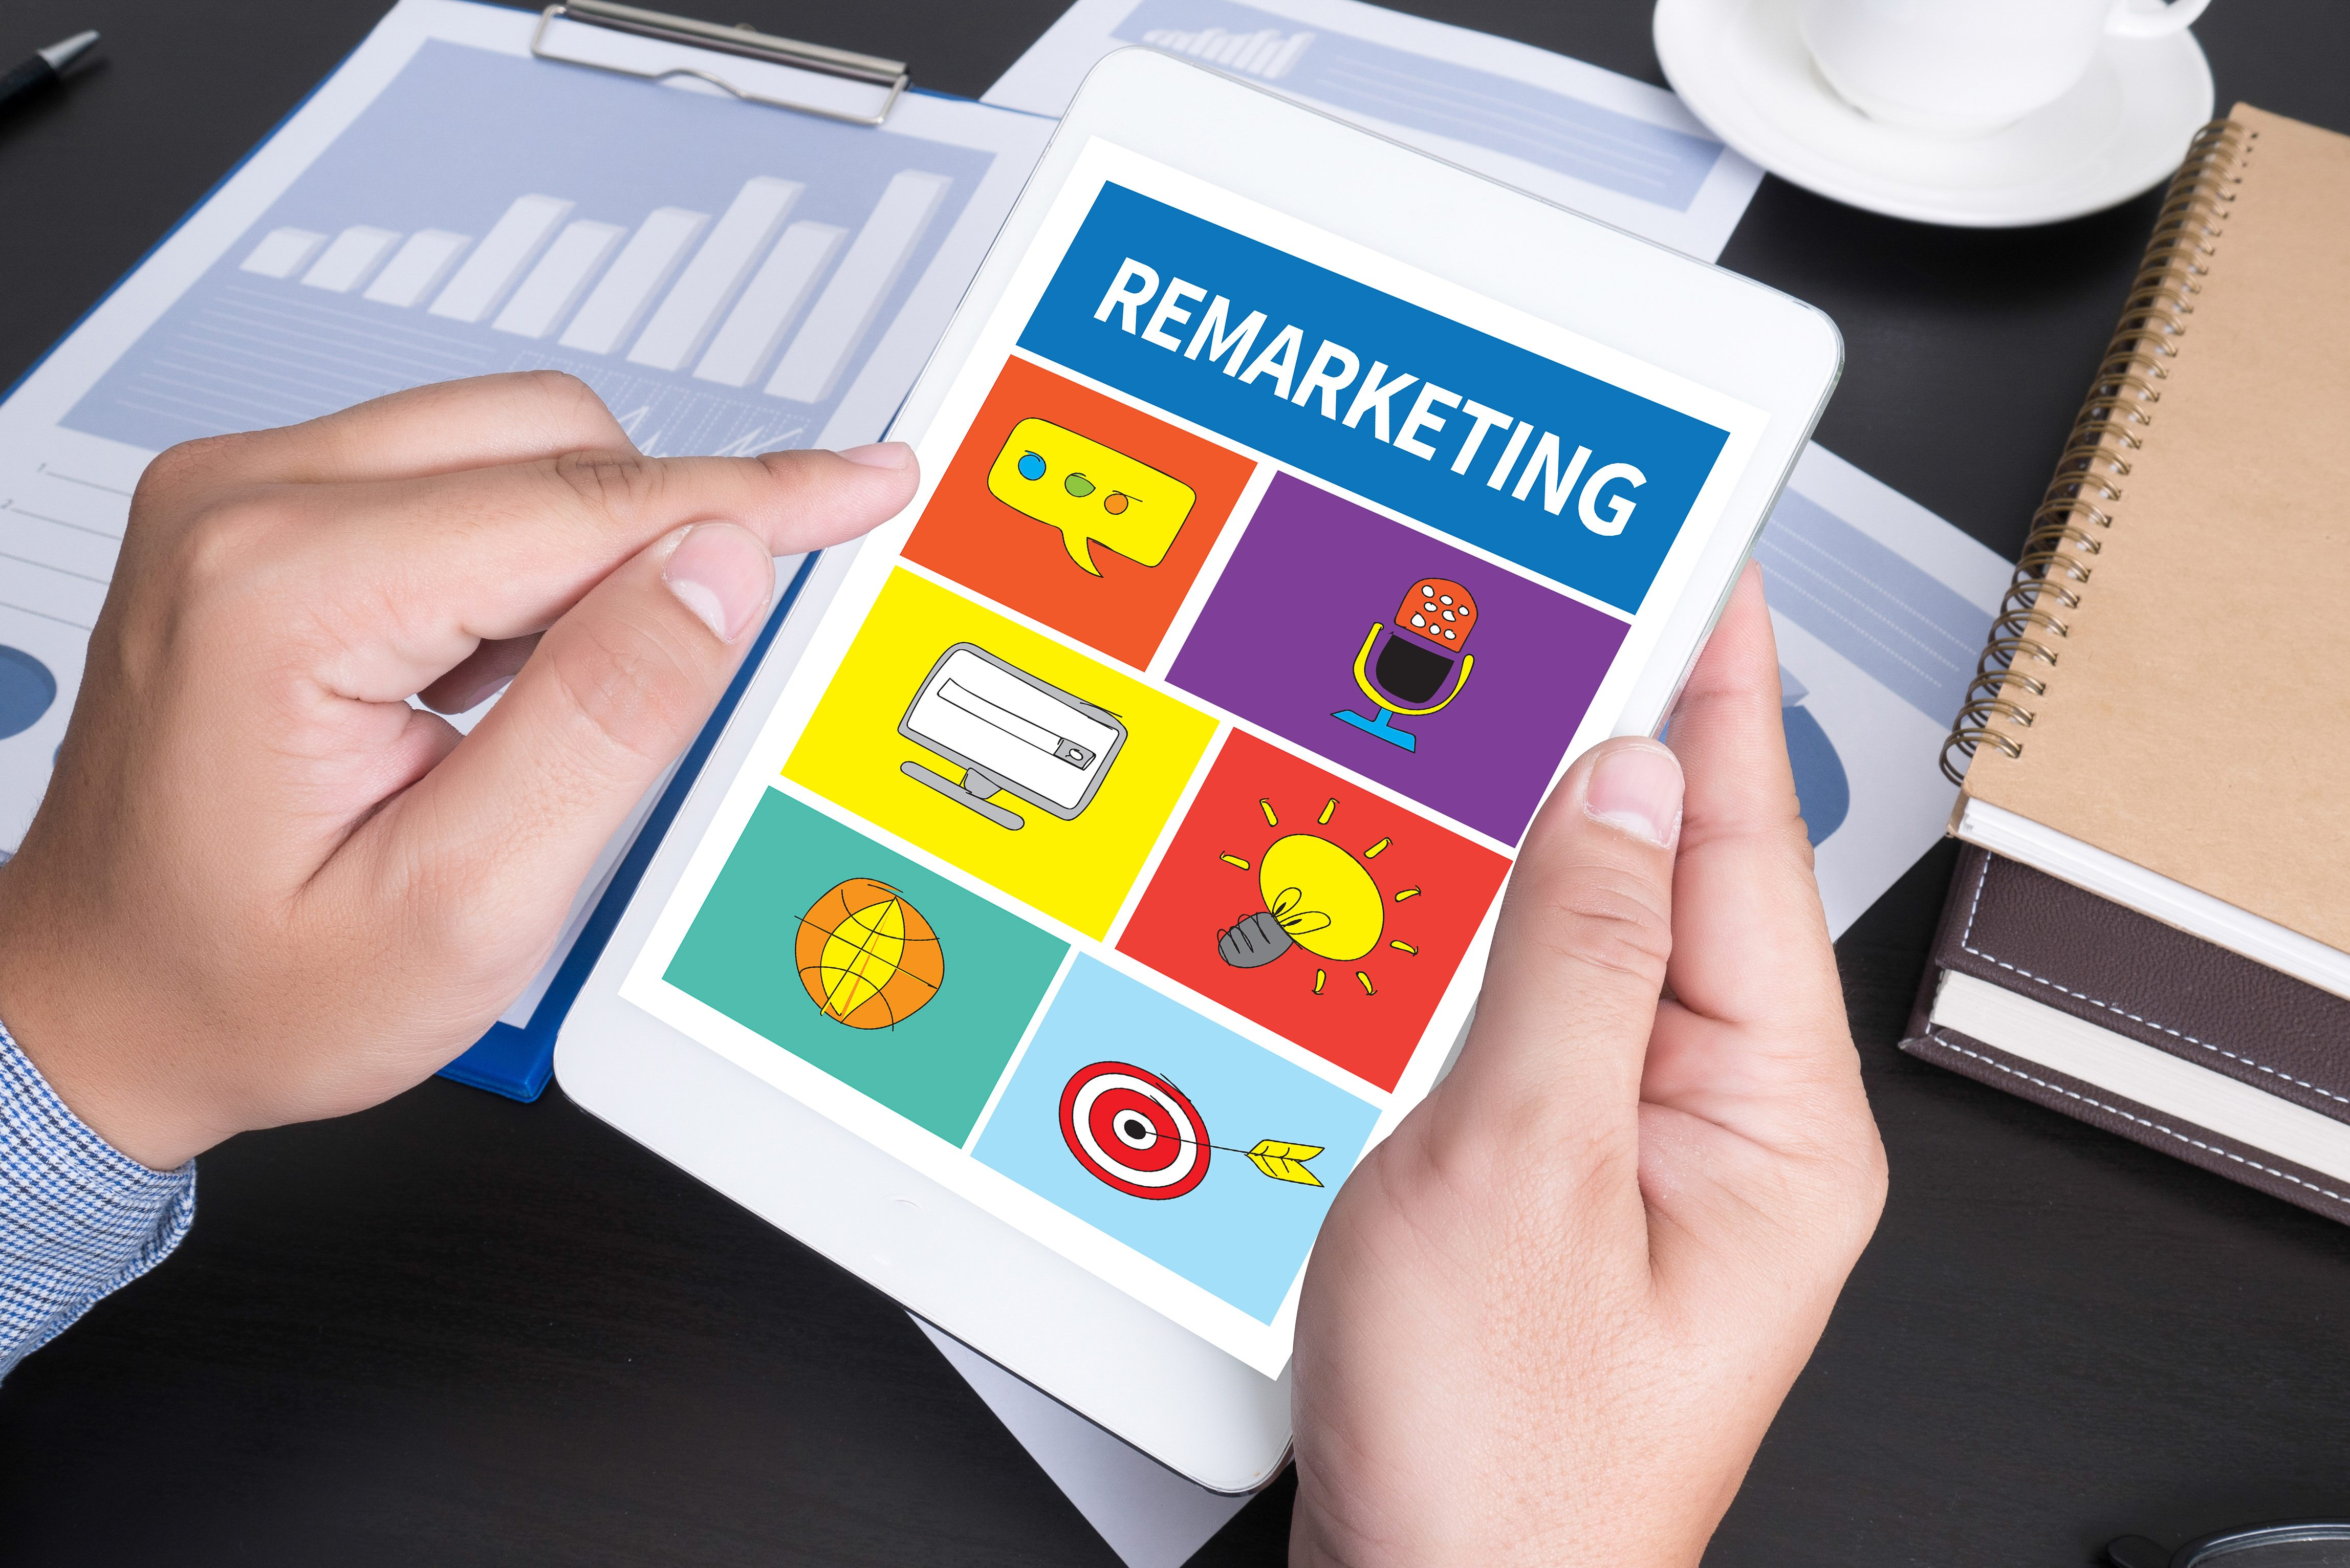 Remarketing - Boutique Marketing Agency Hunter Valley